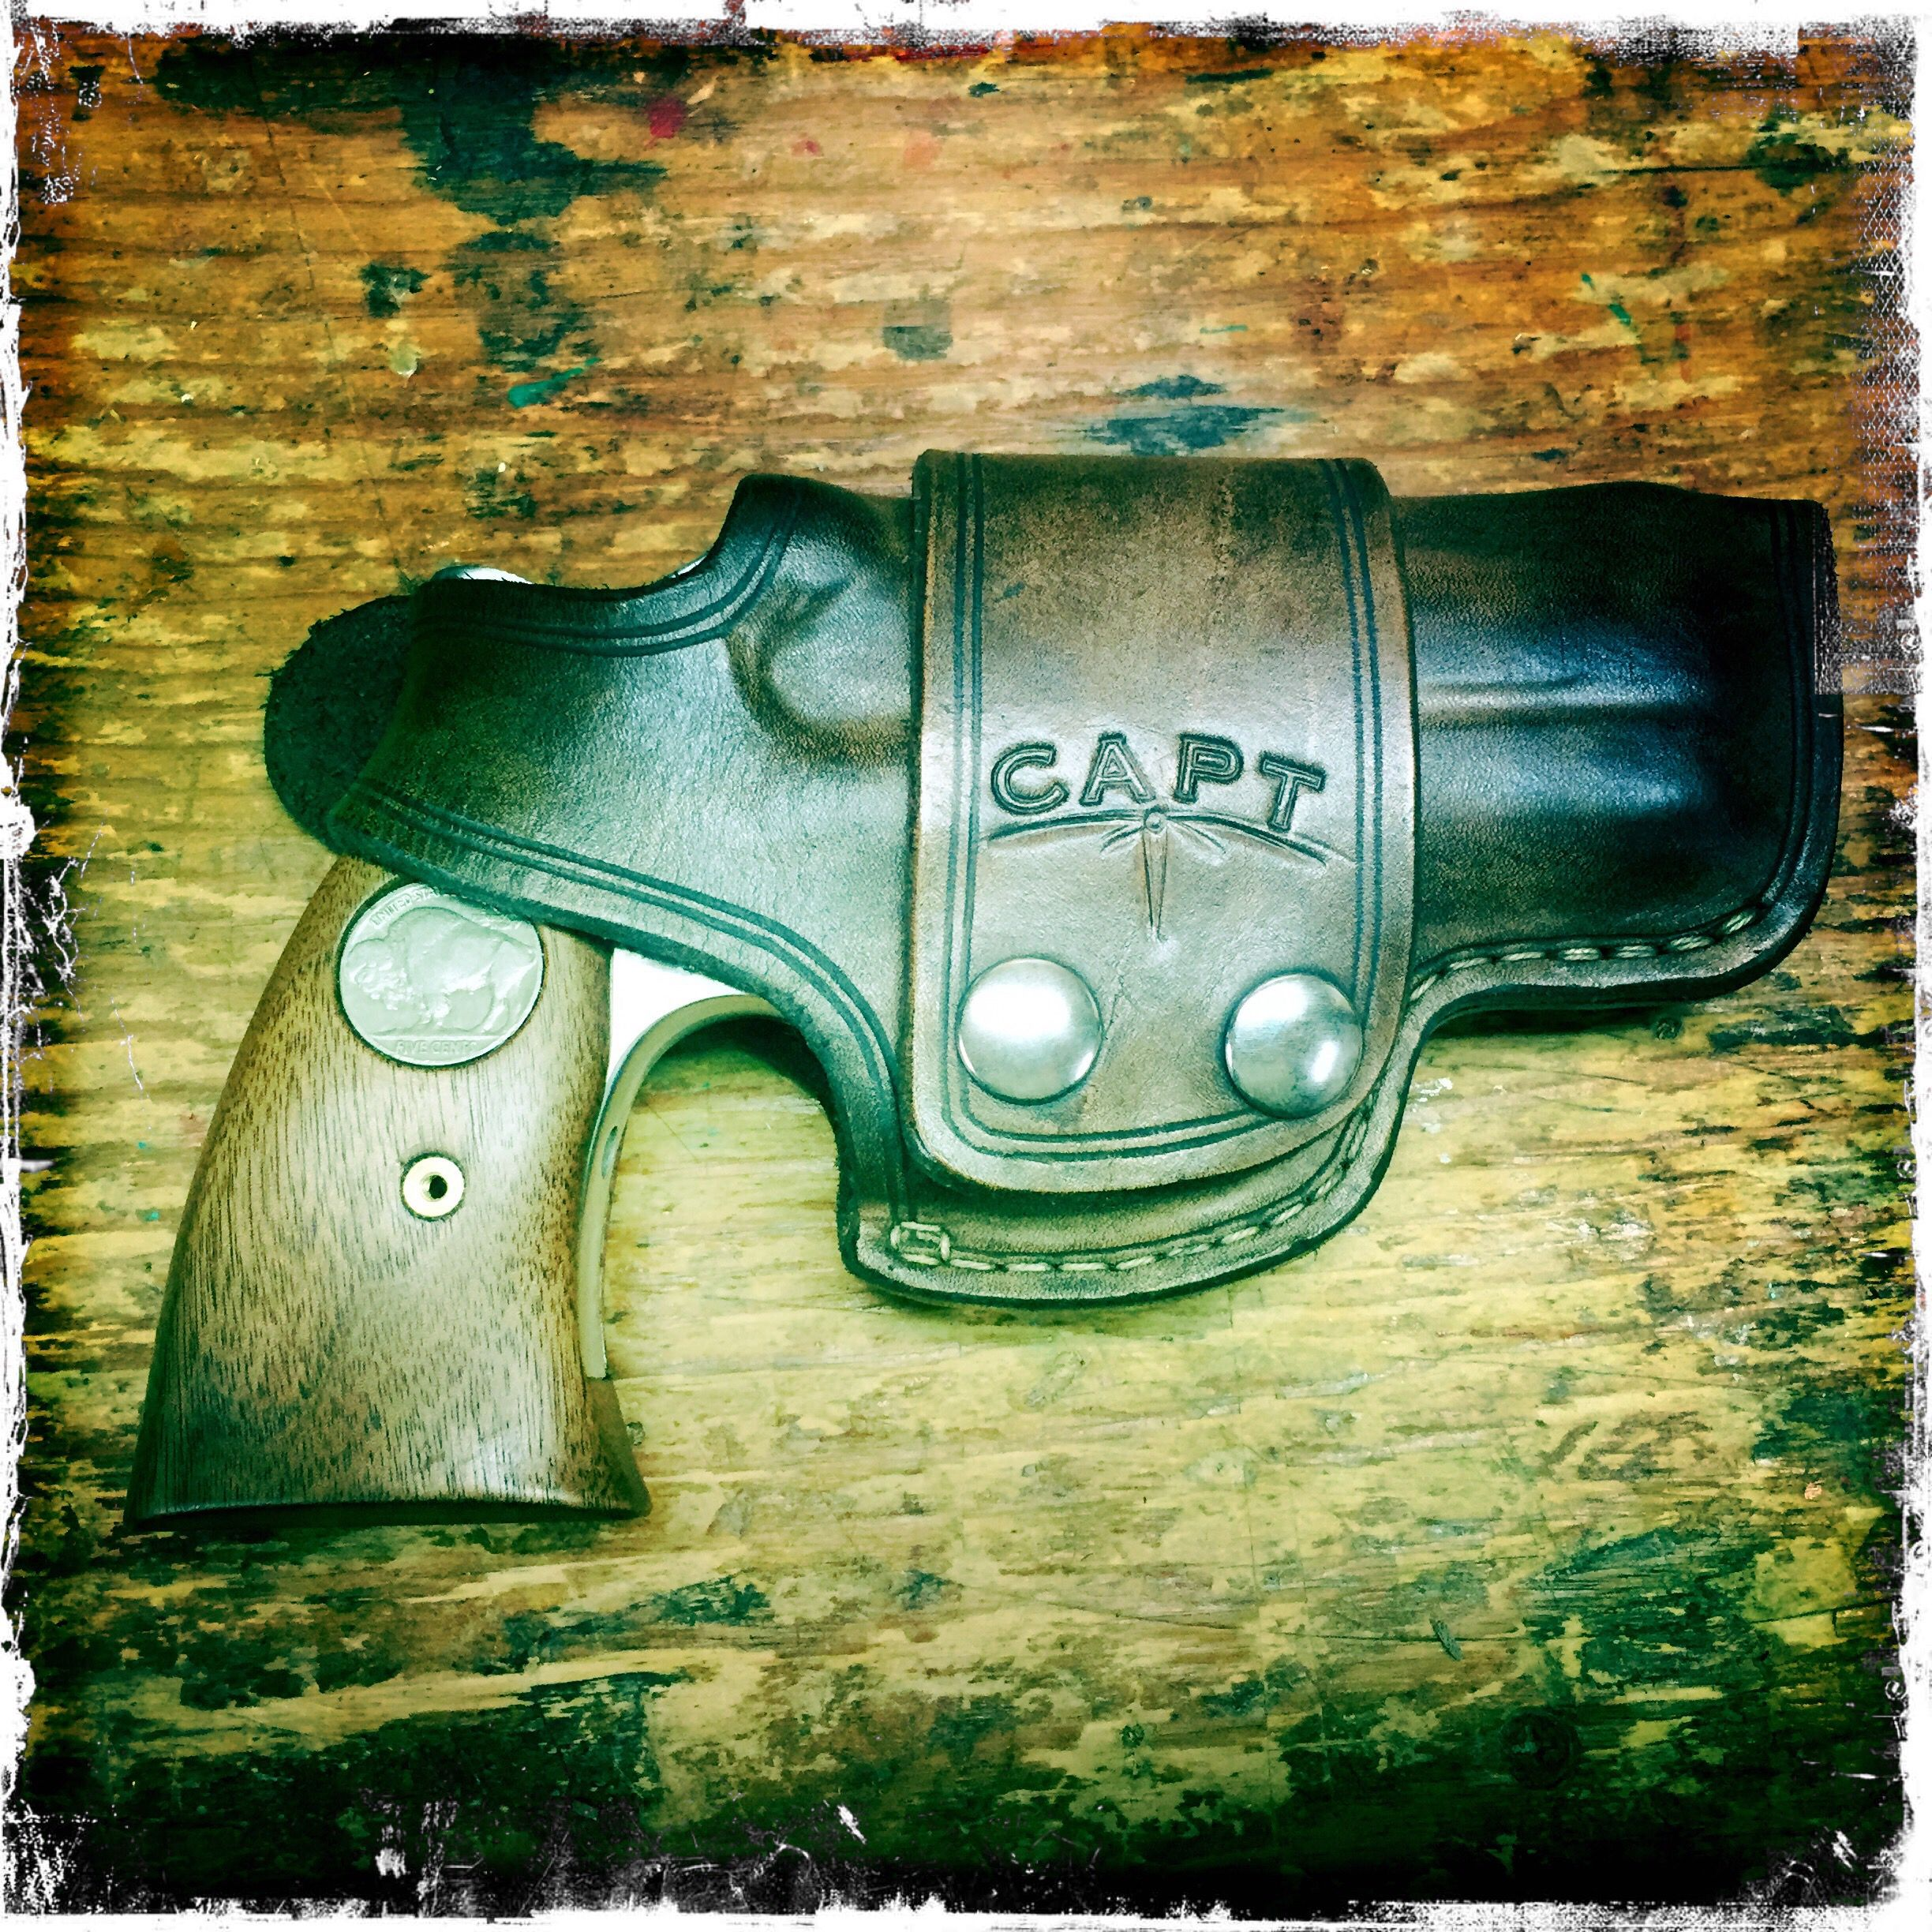 Bond Arms holster and grips By: Todd Korup www.theukerofoz.com